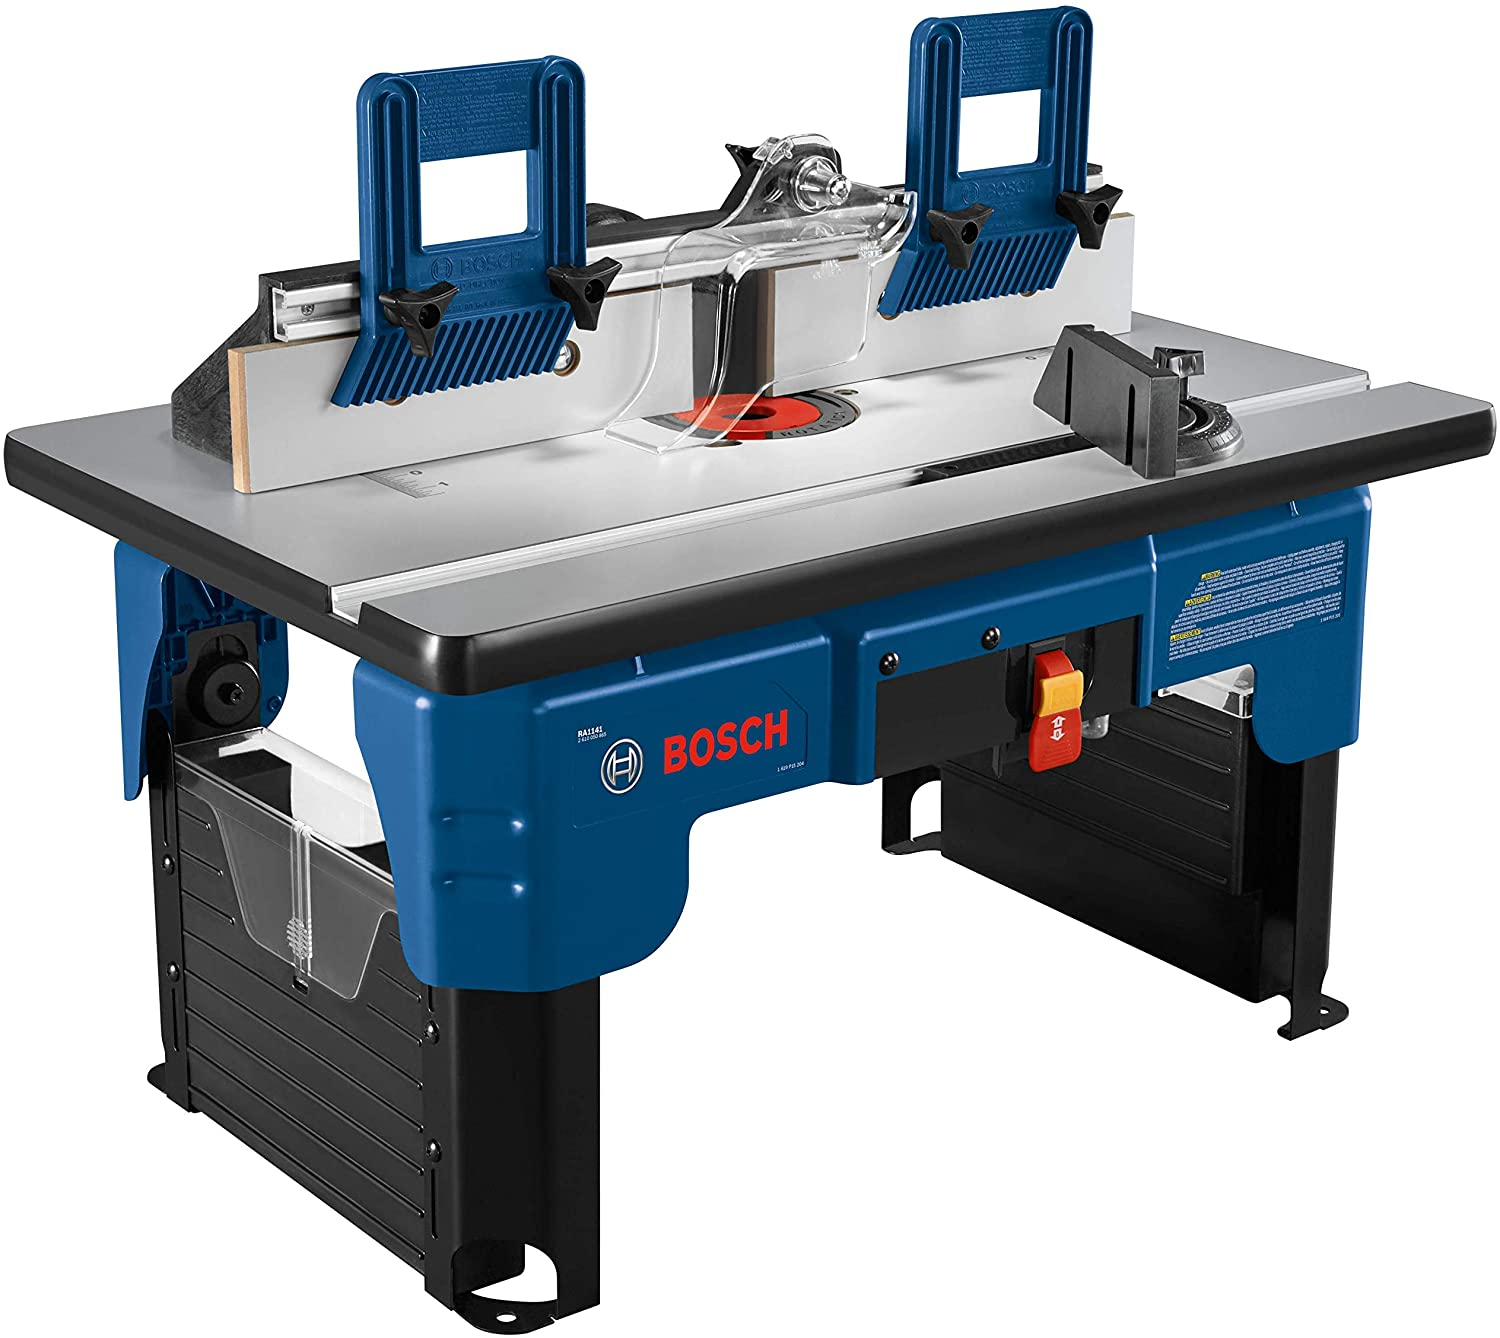 Bosch RA1141 Portable Benchtop Router Table Best Benchtop Router Table